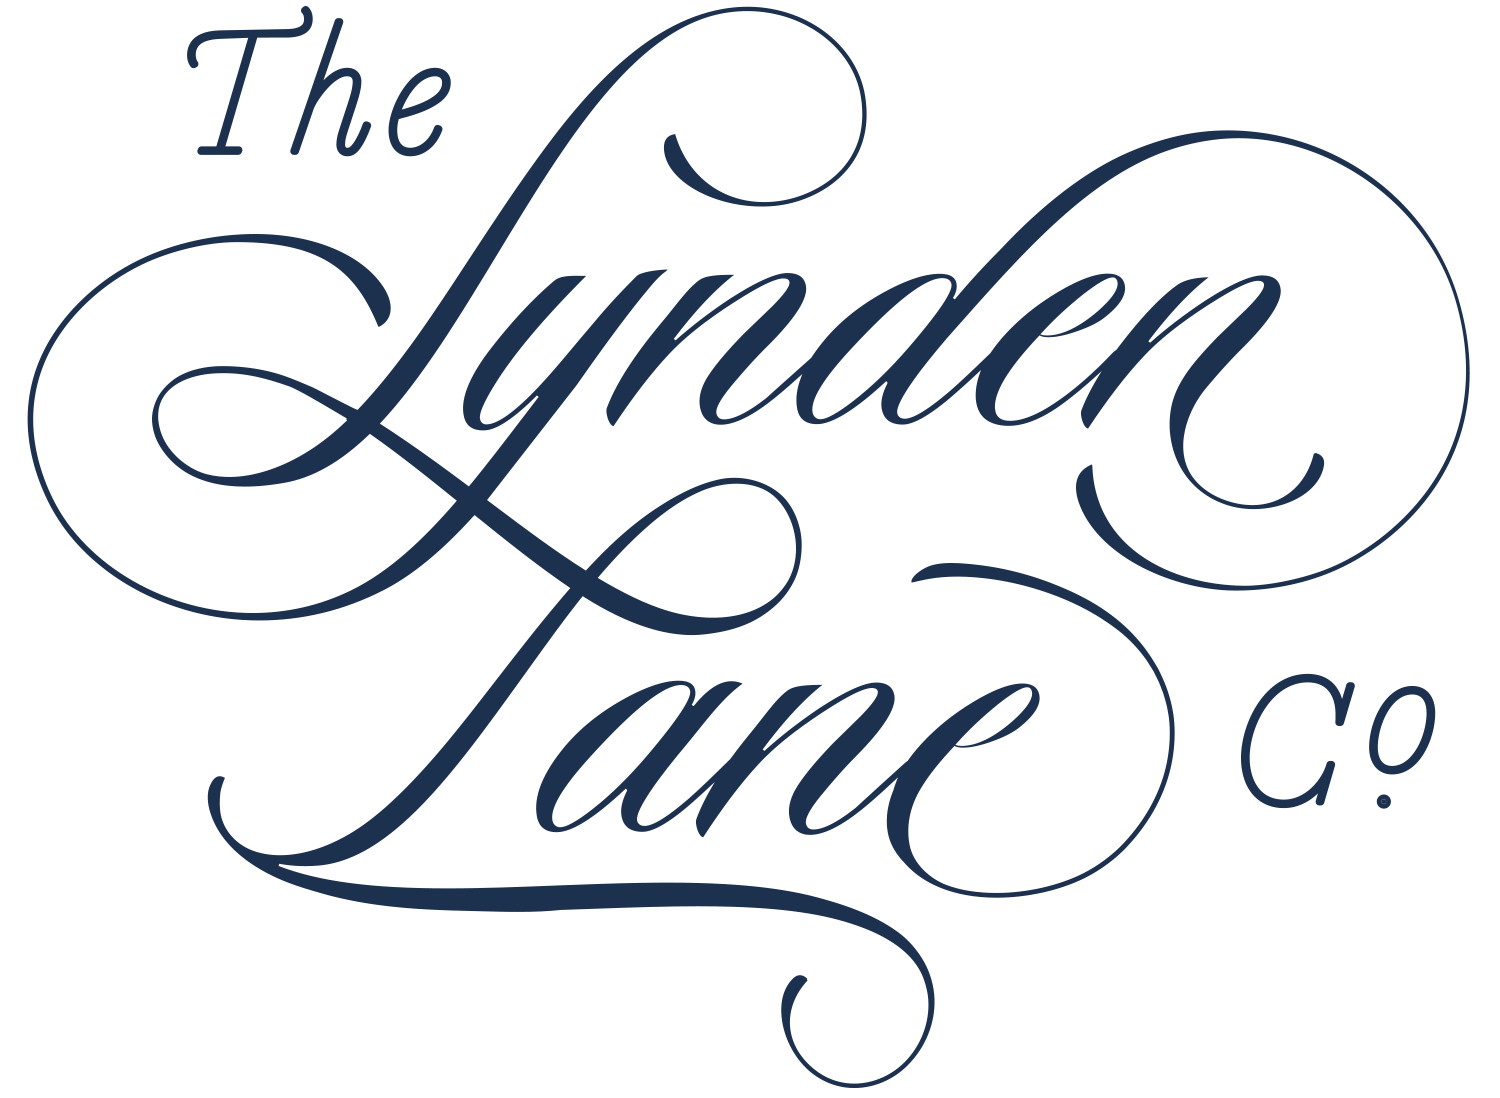 The Lynden Lane Co.